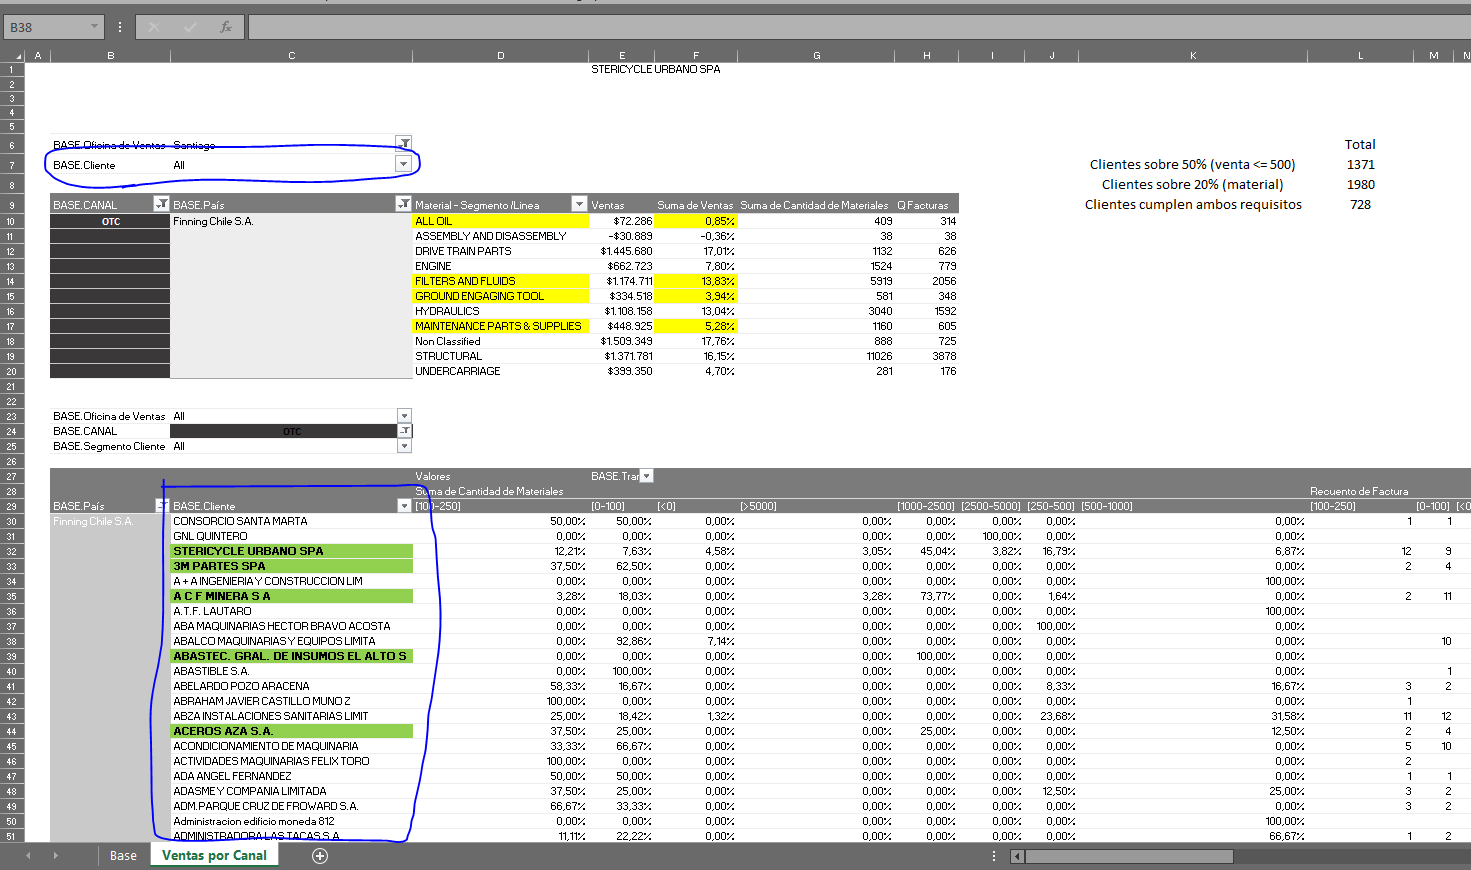 Filter Olap Pivot Table With Double Click Cell Selection